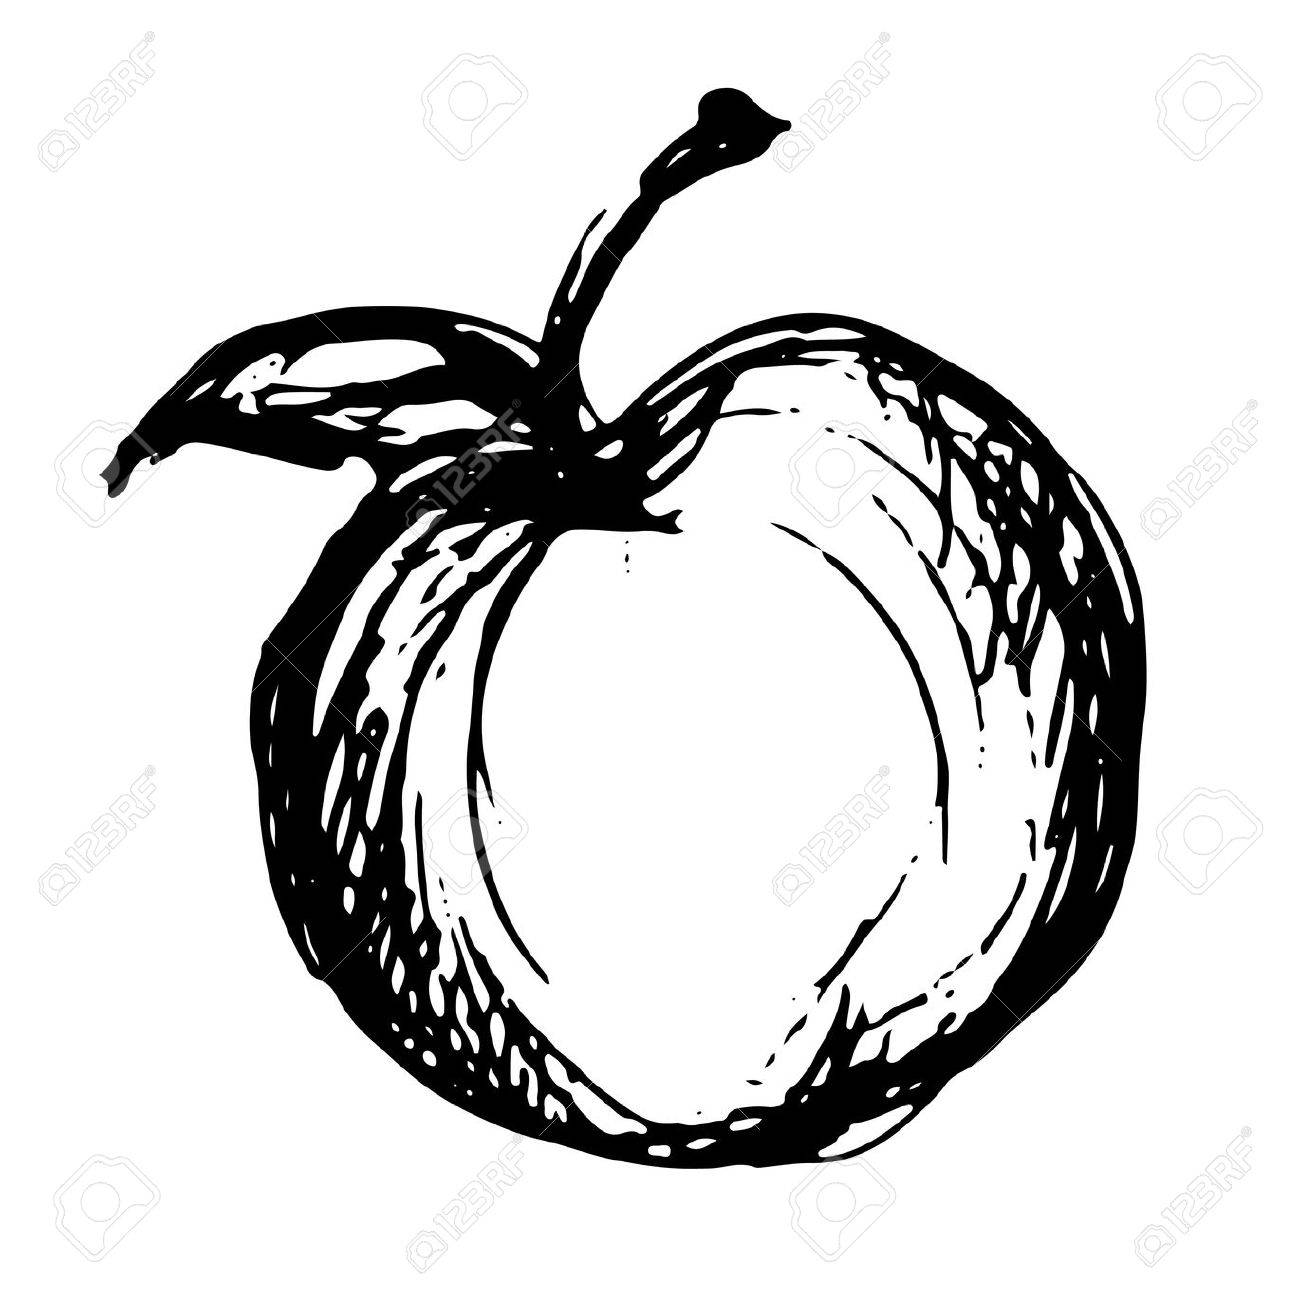 1300x1300 Apple Icon Sketch Royalty Free Cliparts, Vectors, And Stock